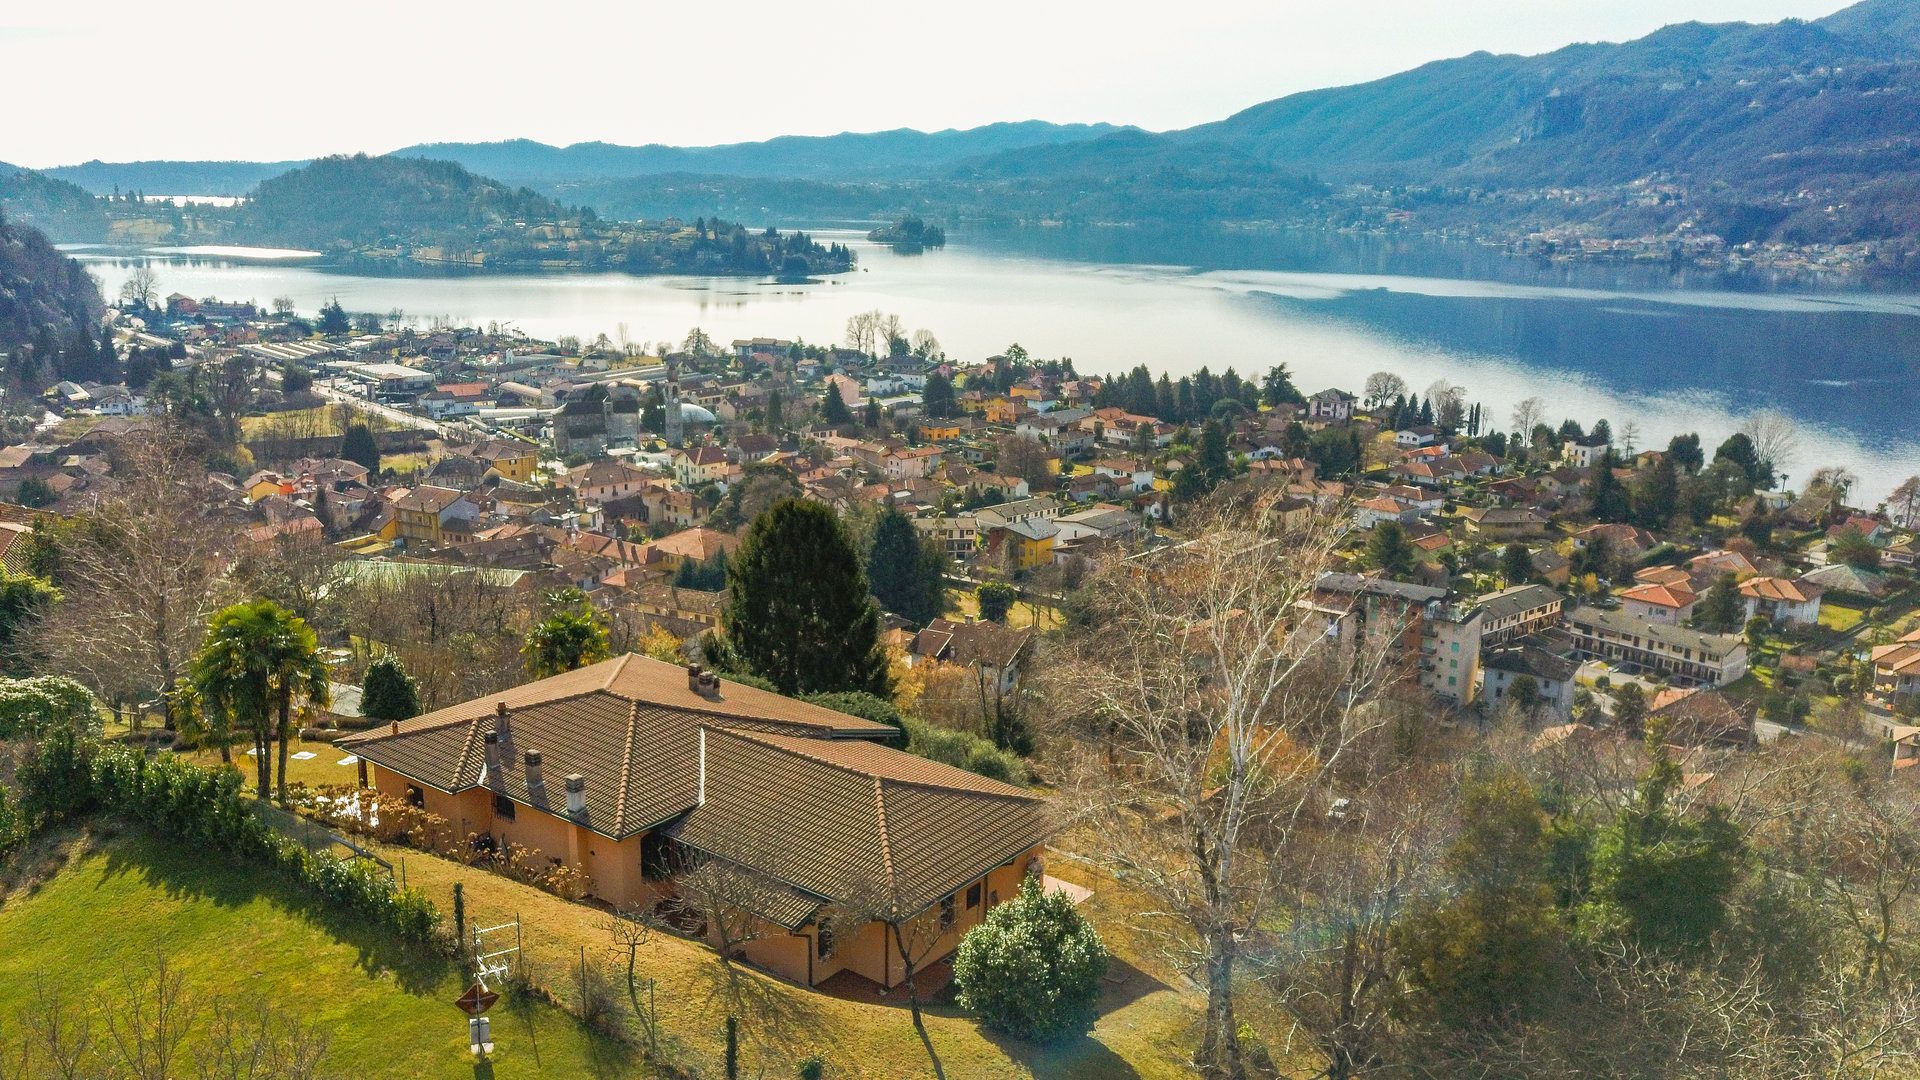 Elegant villa for sale in Pettenasco on Lake Orta - panoramic view